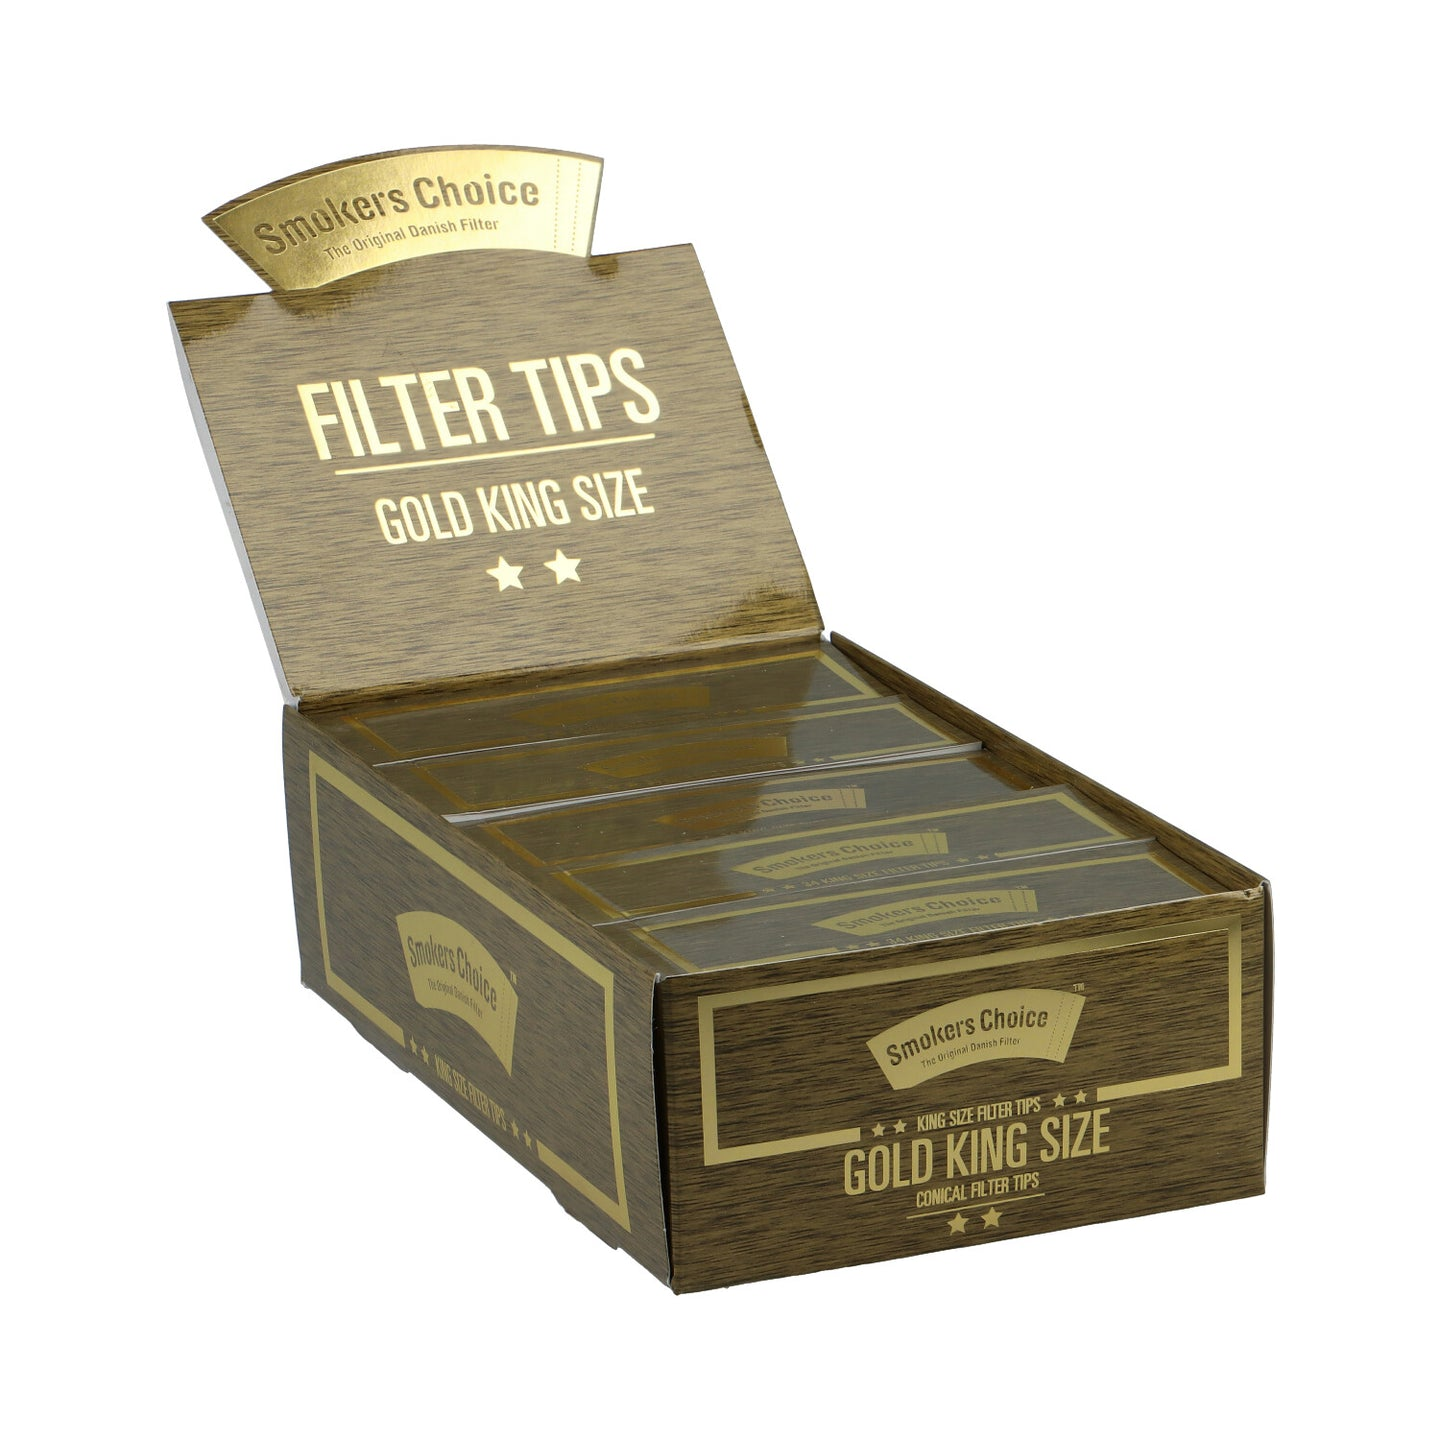 King Size Gold Filter Tips Box